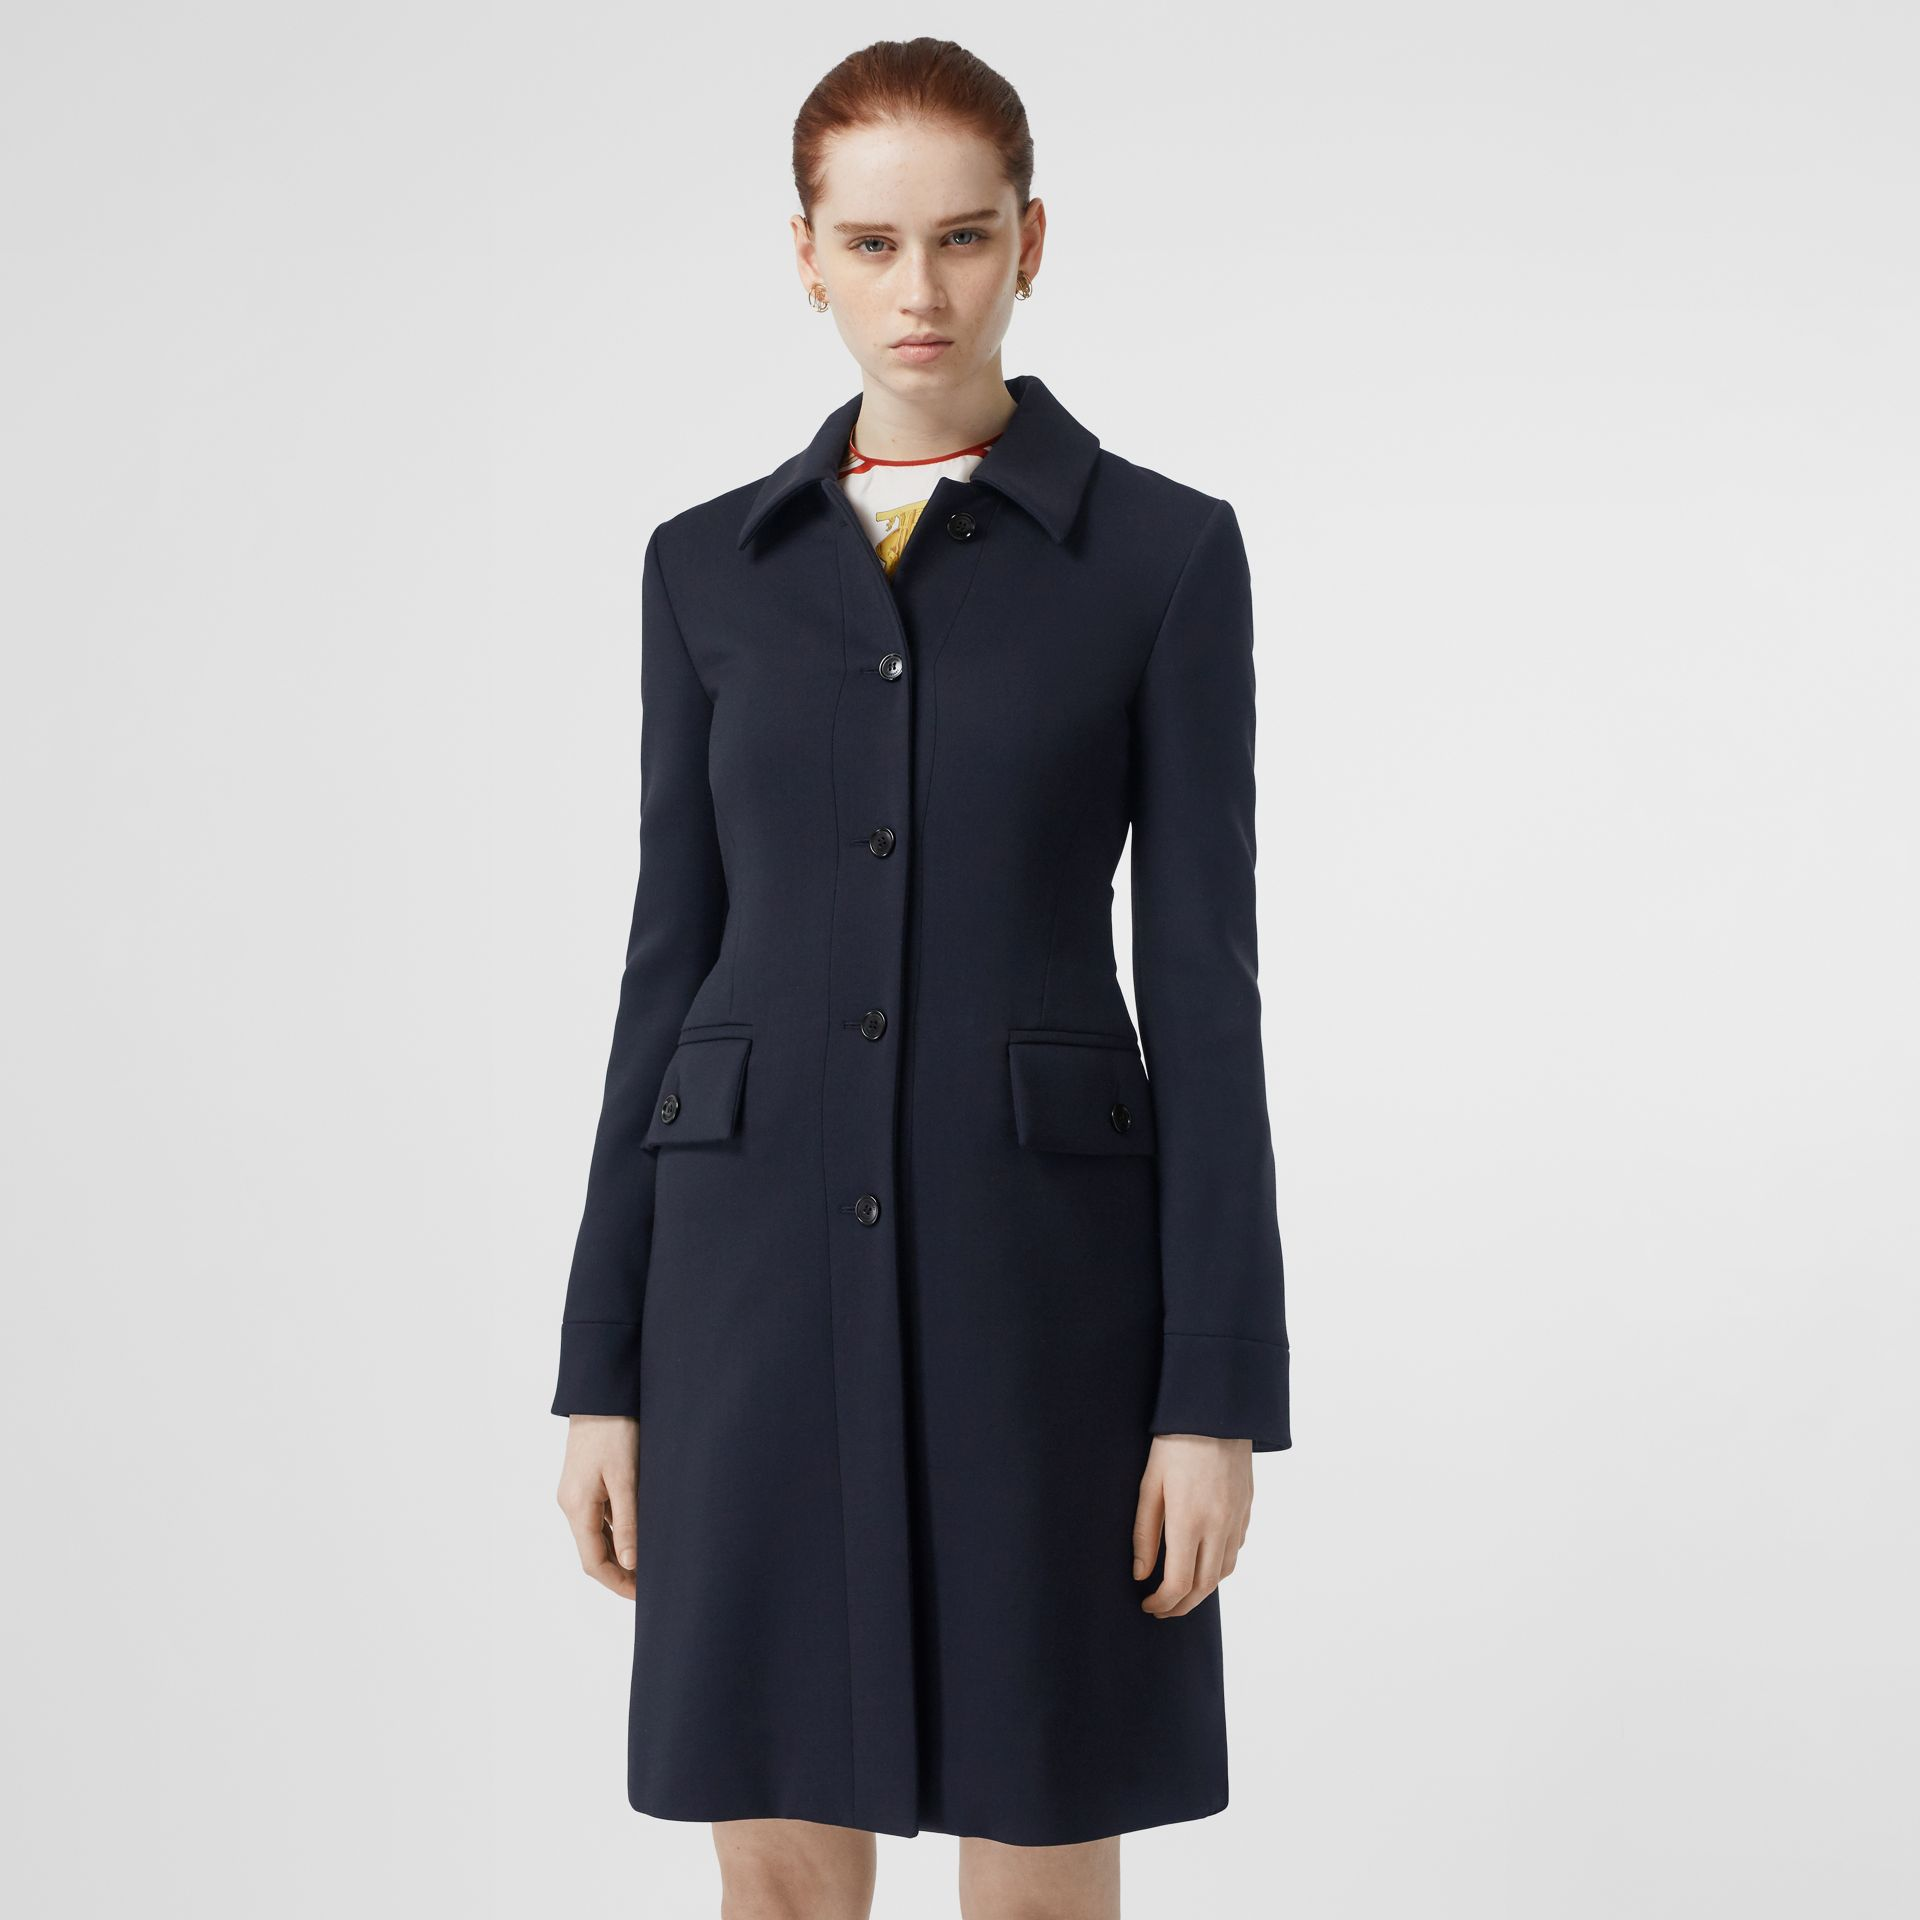 Double-faced Wool Cashmere Blend Coat in Navy - Women | Burberry Australia - gallery image 4